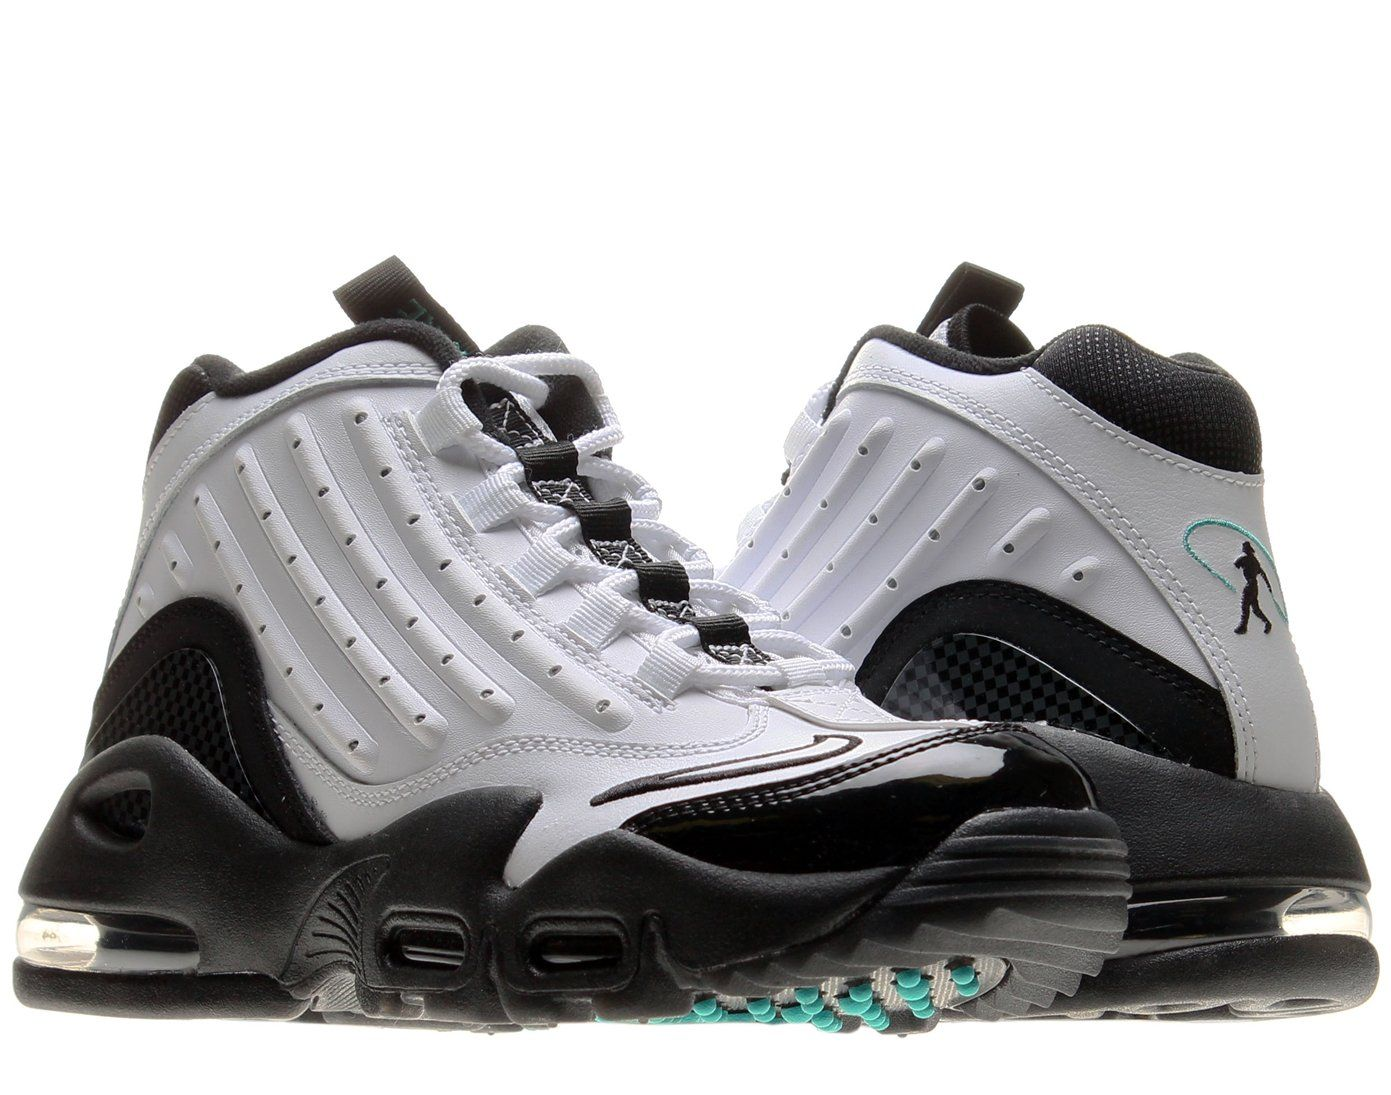 Nike Air Griffey Max II (GS) Boys Cross Training Shoes 443957-100 White 5 M US. Nylon upper. Ankle support strap. Rubber flex grooves. Max Air unit at the heel. Rubber outsole.